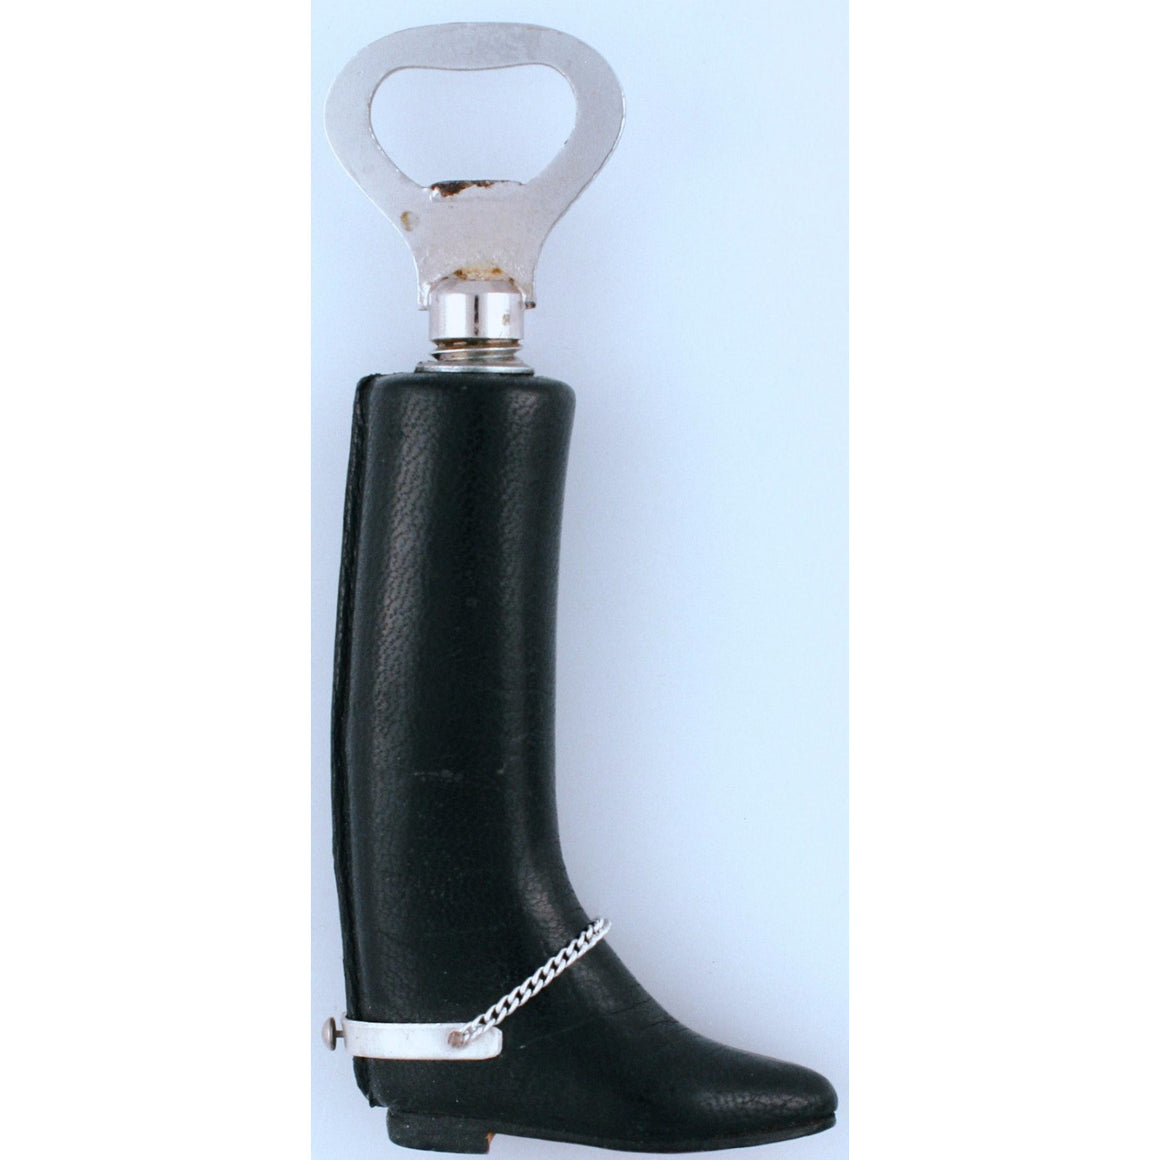 Riding Boot Bottle Cap Opener